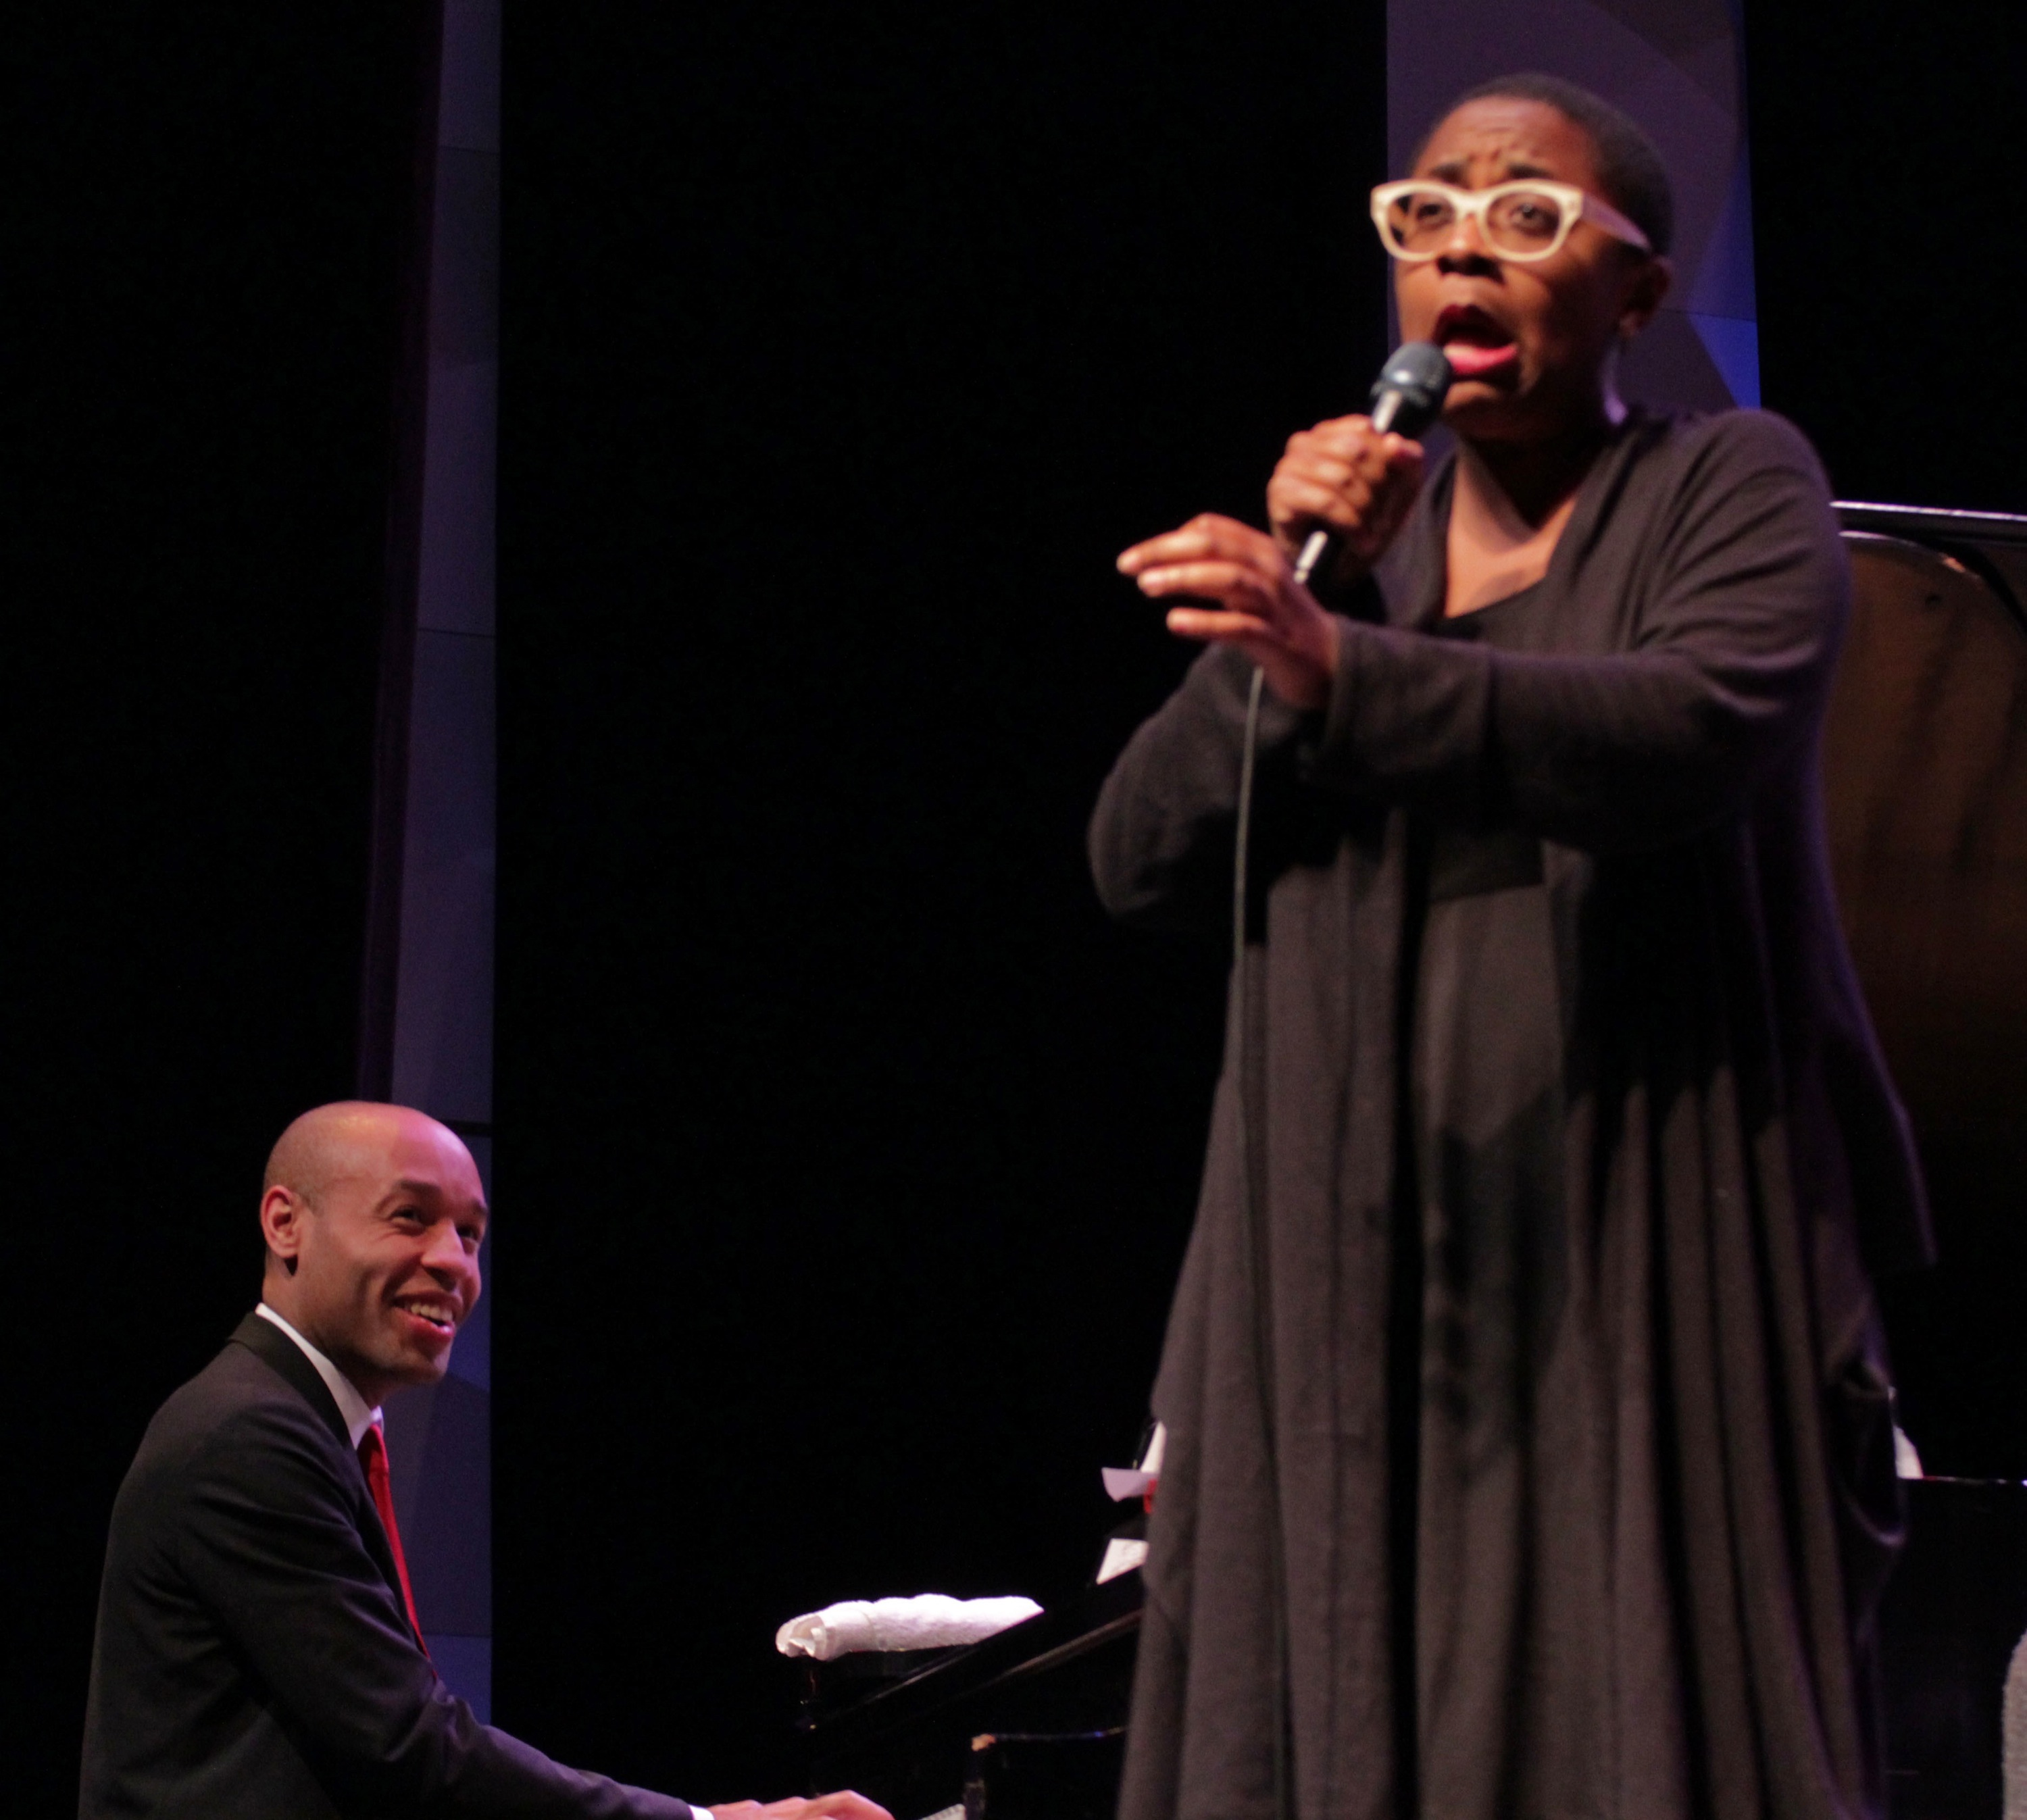 Aaron diehl and cecile mclorin salvant at tri-c jazzfest cleveland 2013